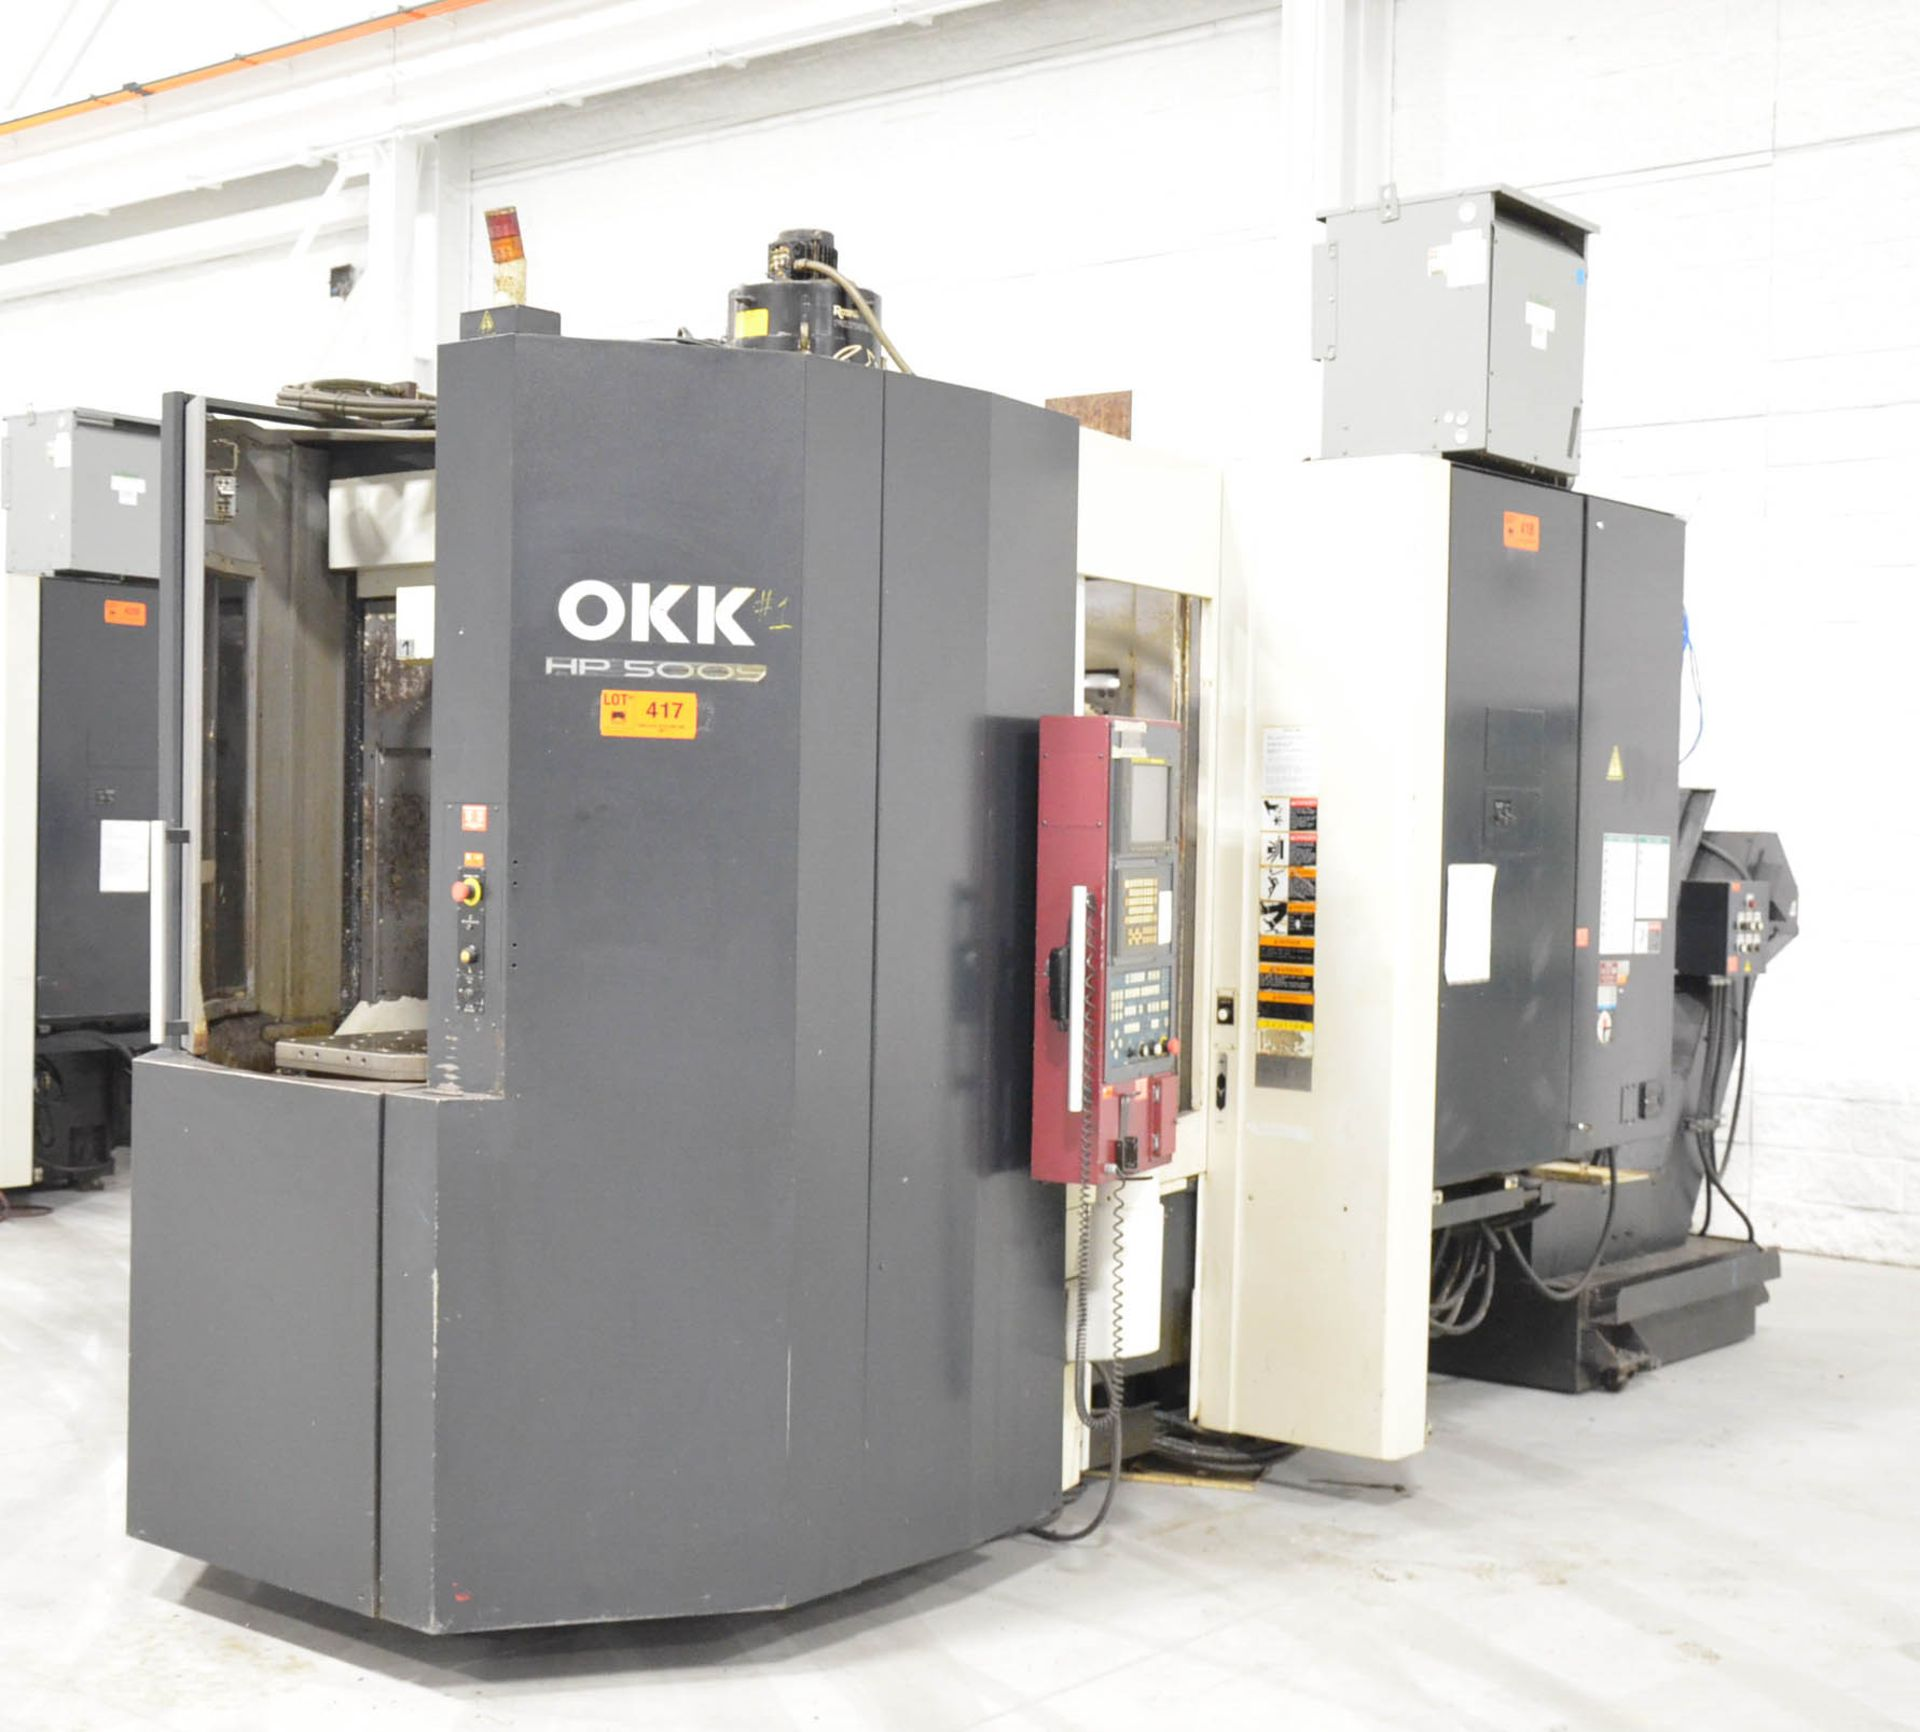 OKK (2006) HP500S TWIN-PALLET CNC HORIZONTAL MACHINING CENTER WITH FANUC 180I S-MB CNC CONTROL, 19. - Image 2 of 6